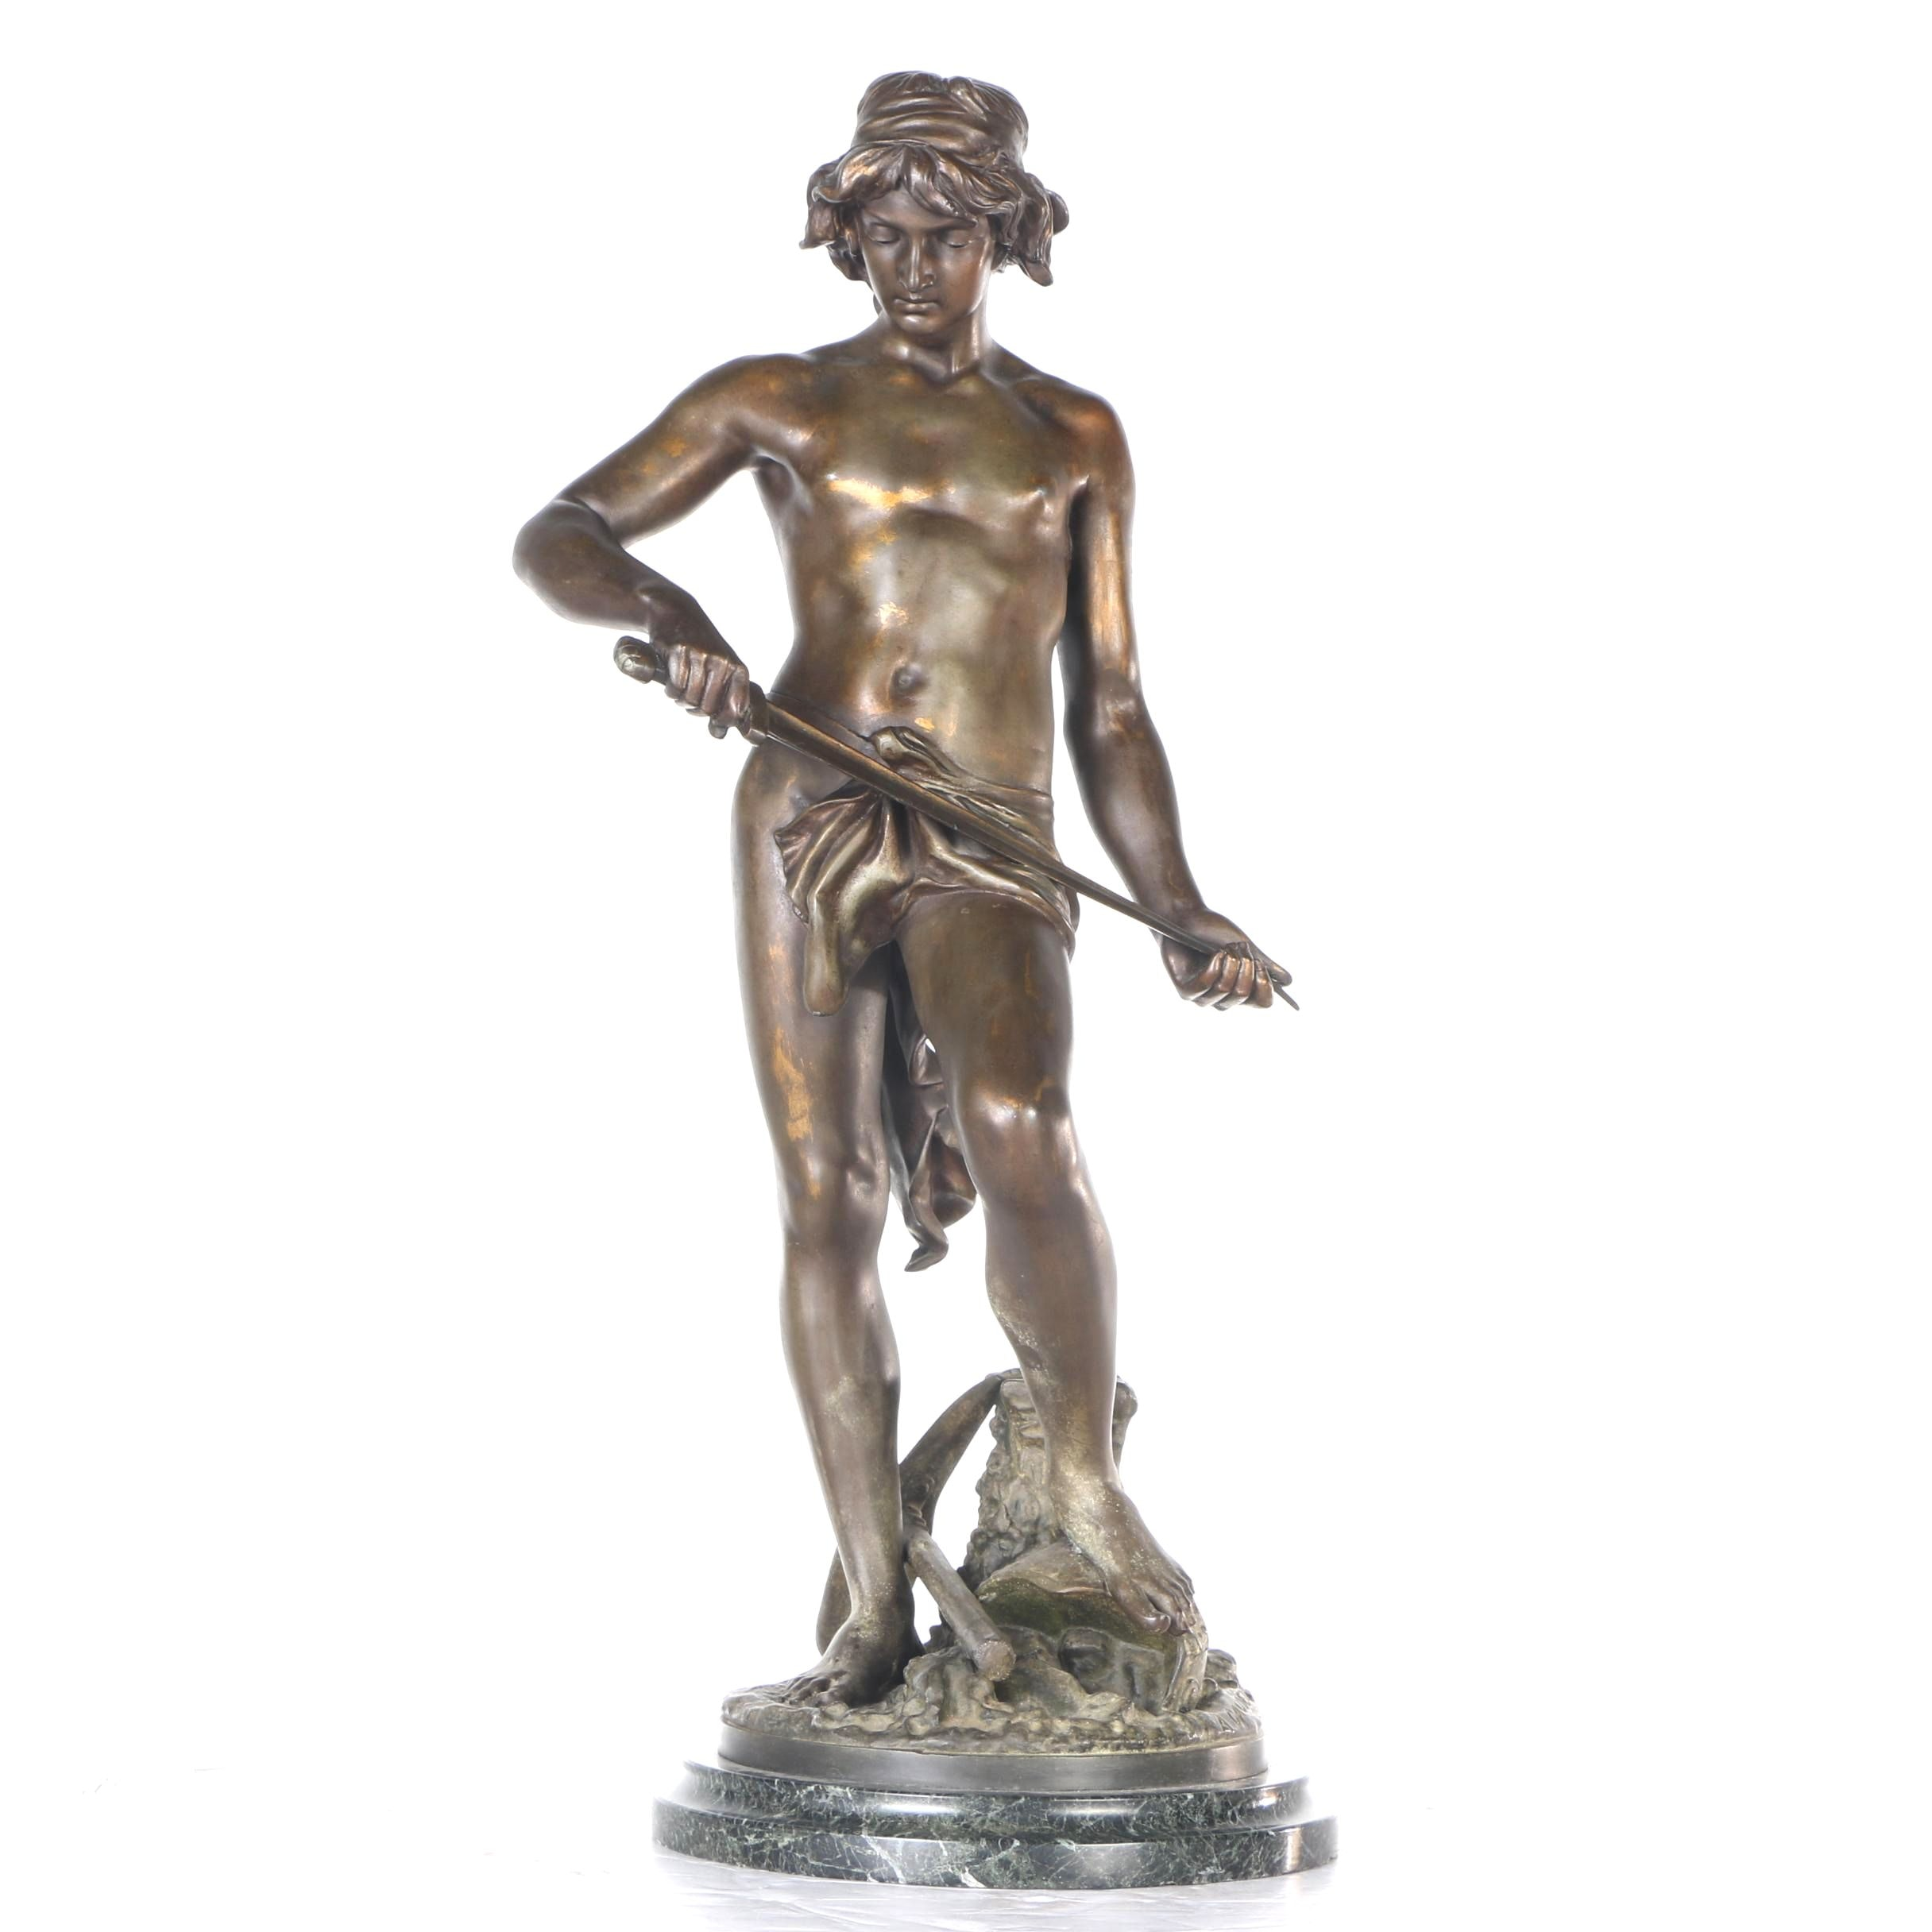 Bronze Tone Metal Gladiator Figure After Adrien Étienne Gaudez